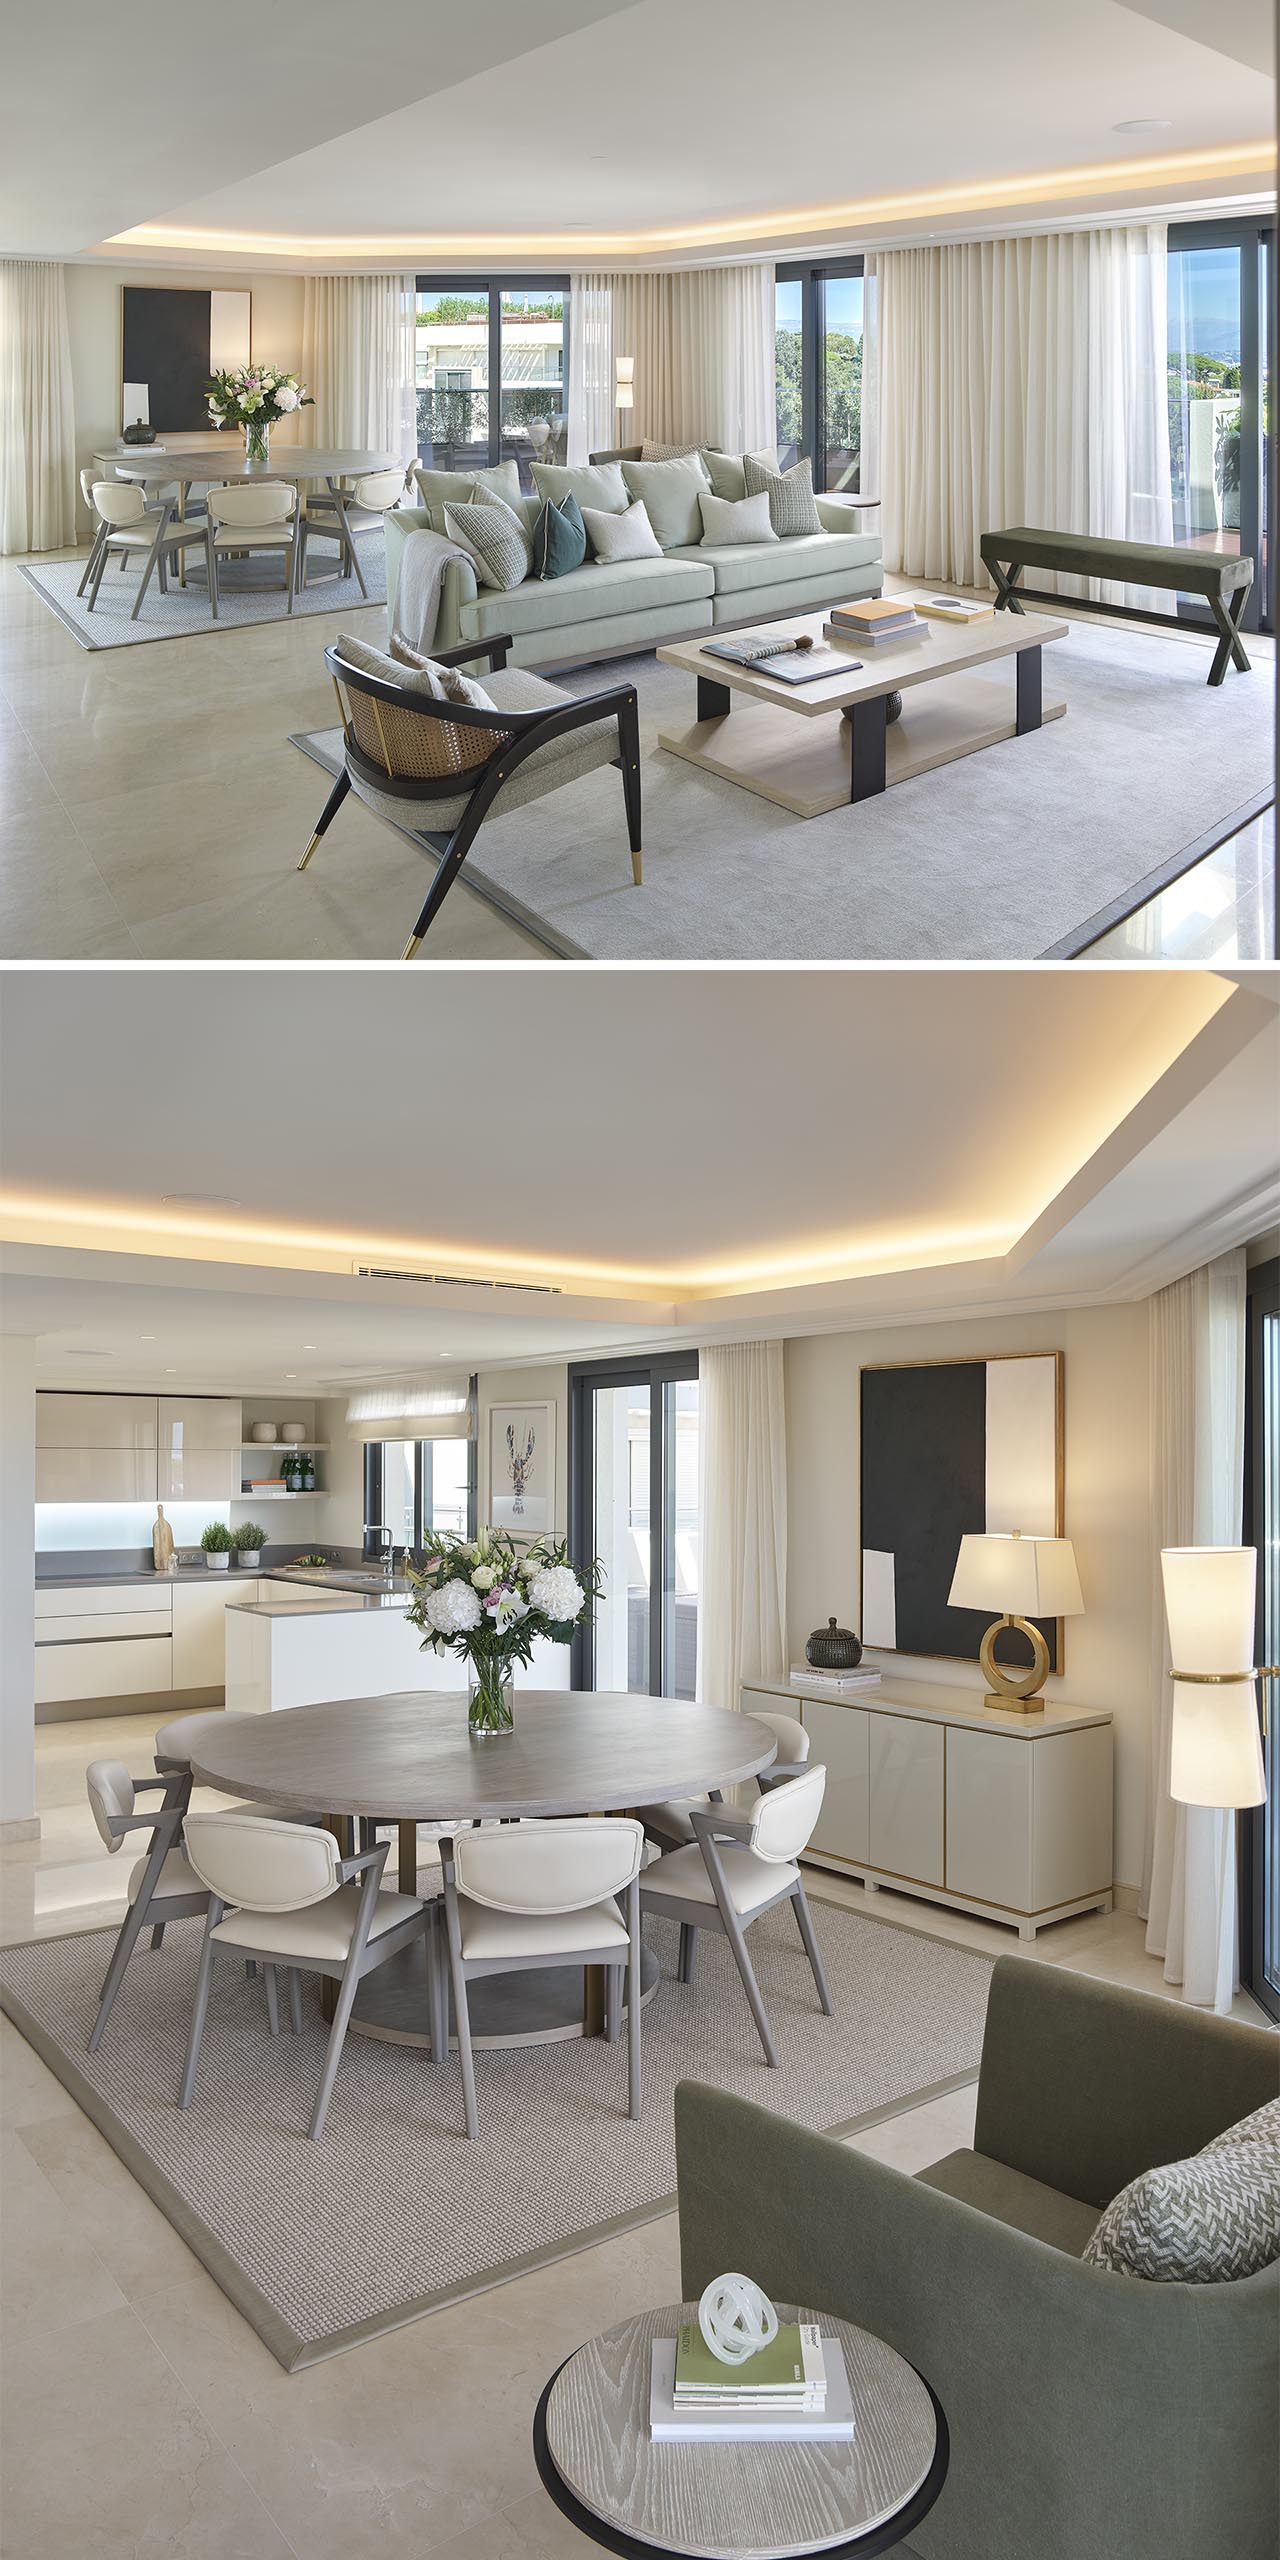 An open plan living room and dining area with recessed ceiling lighting.